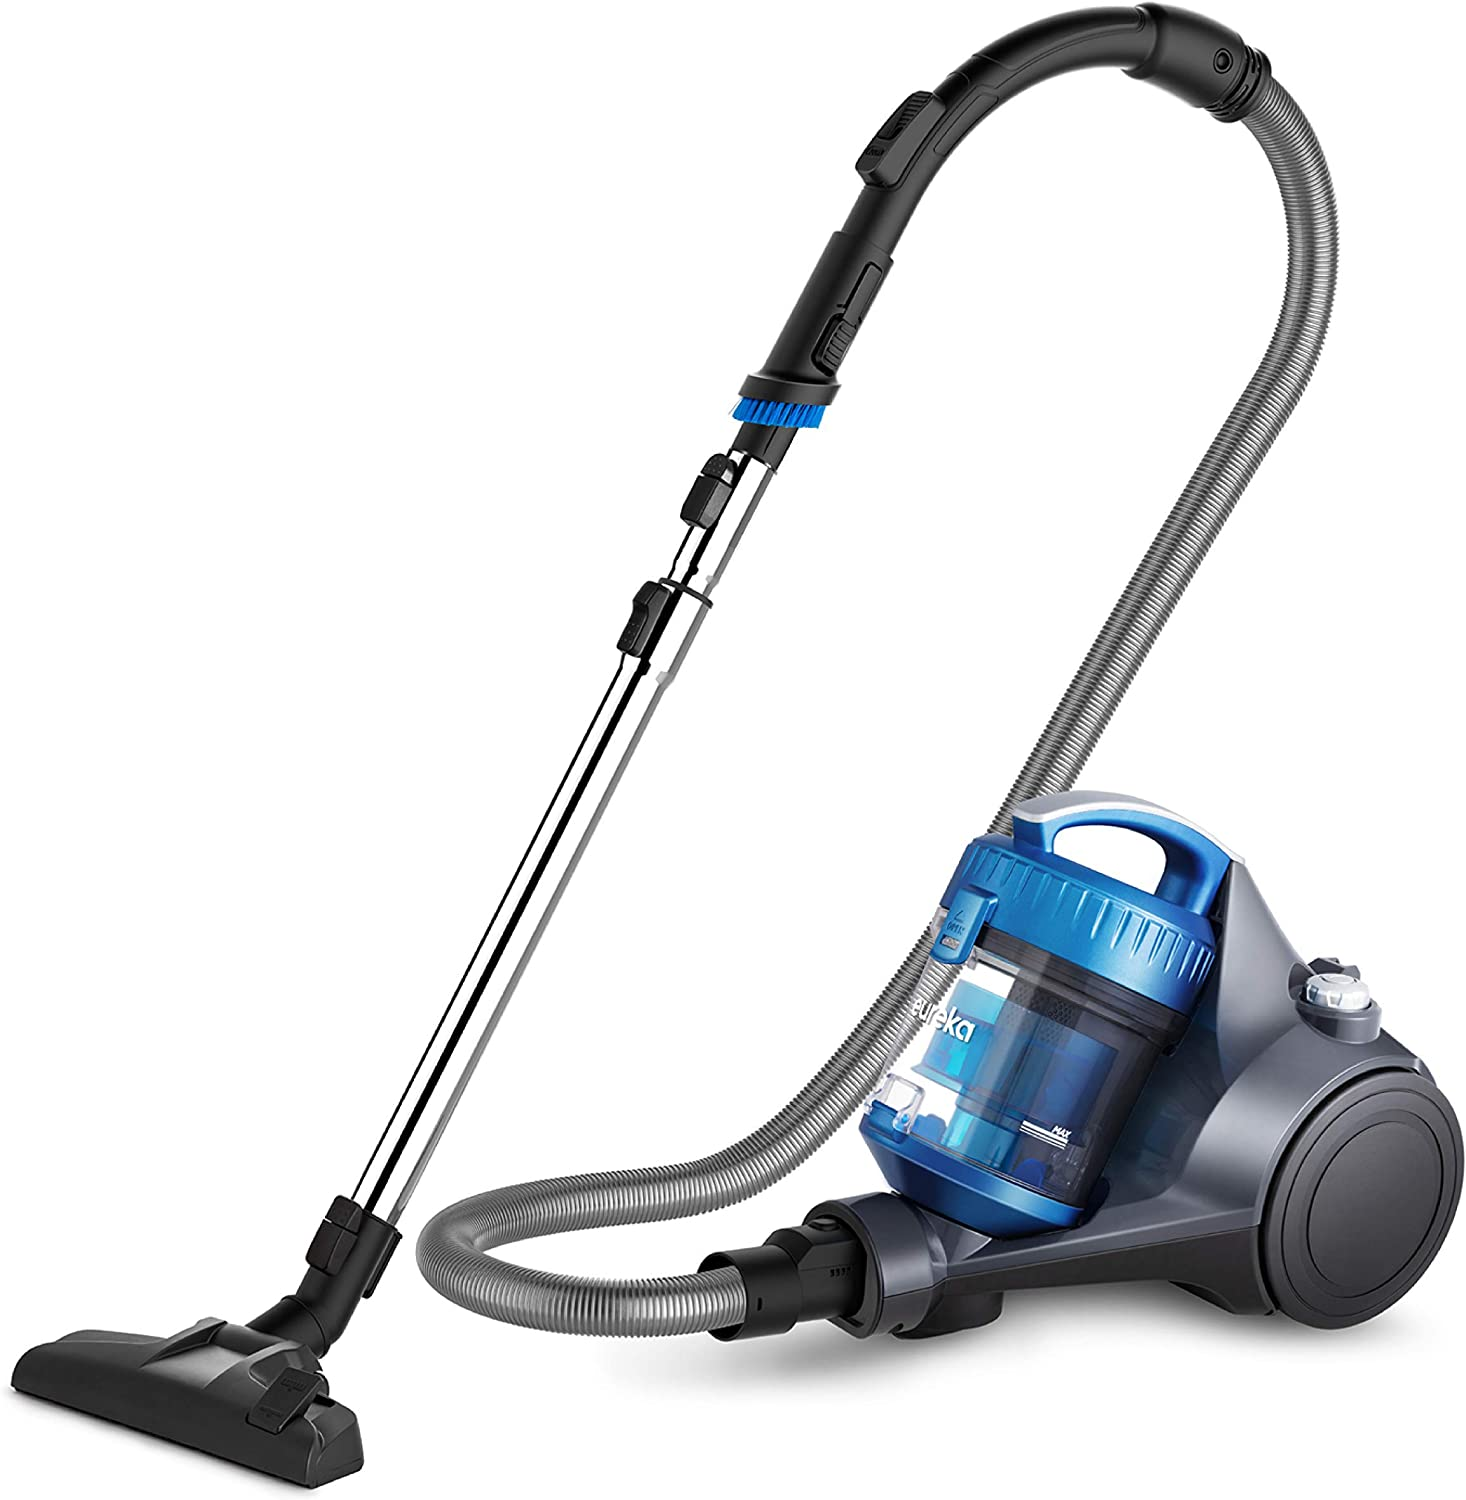 Eureka WhirlWind Bagless Canister Cleaner NEN110A